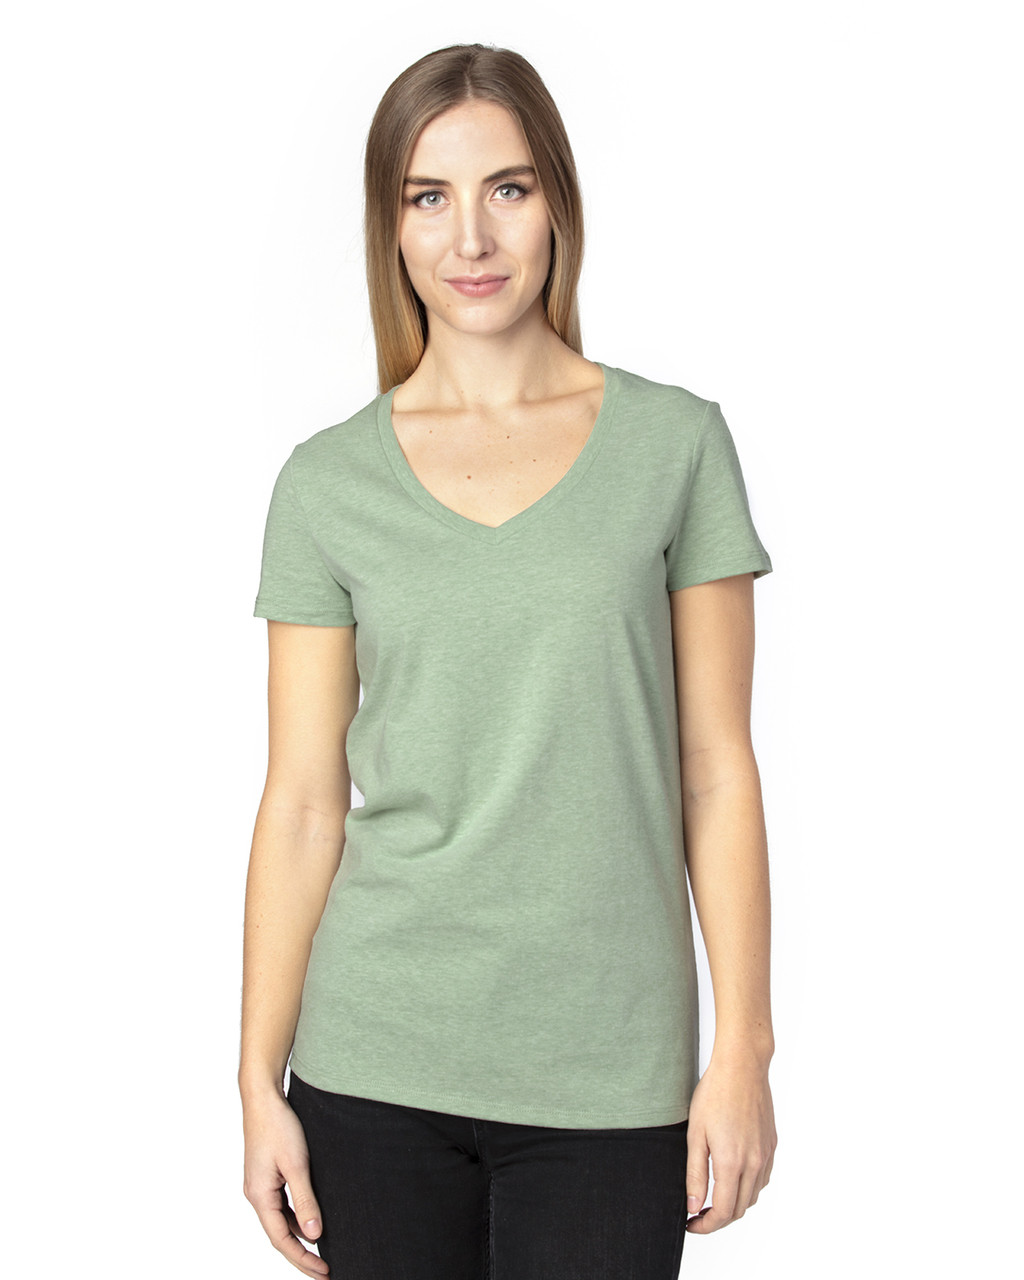 Army Heather - 200RV Threadfast Ladies' Ultimate Short-Sleeve V-Neck T-Shirt | BlankClothing.ca